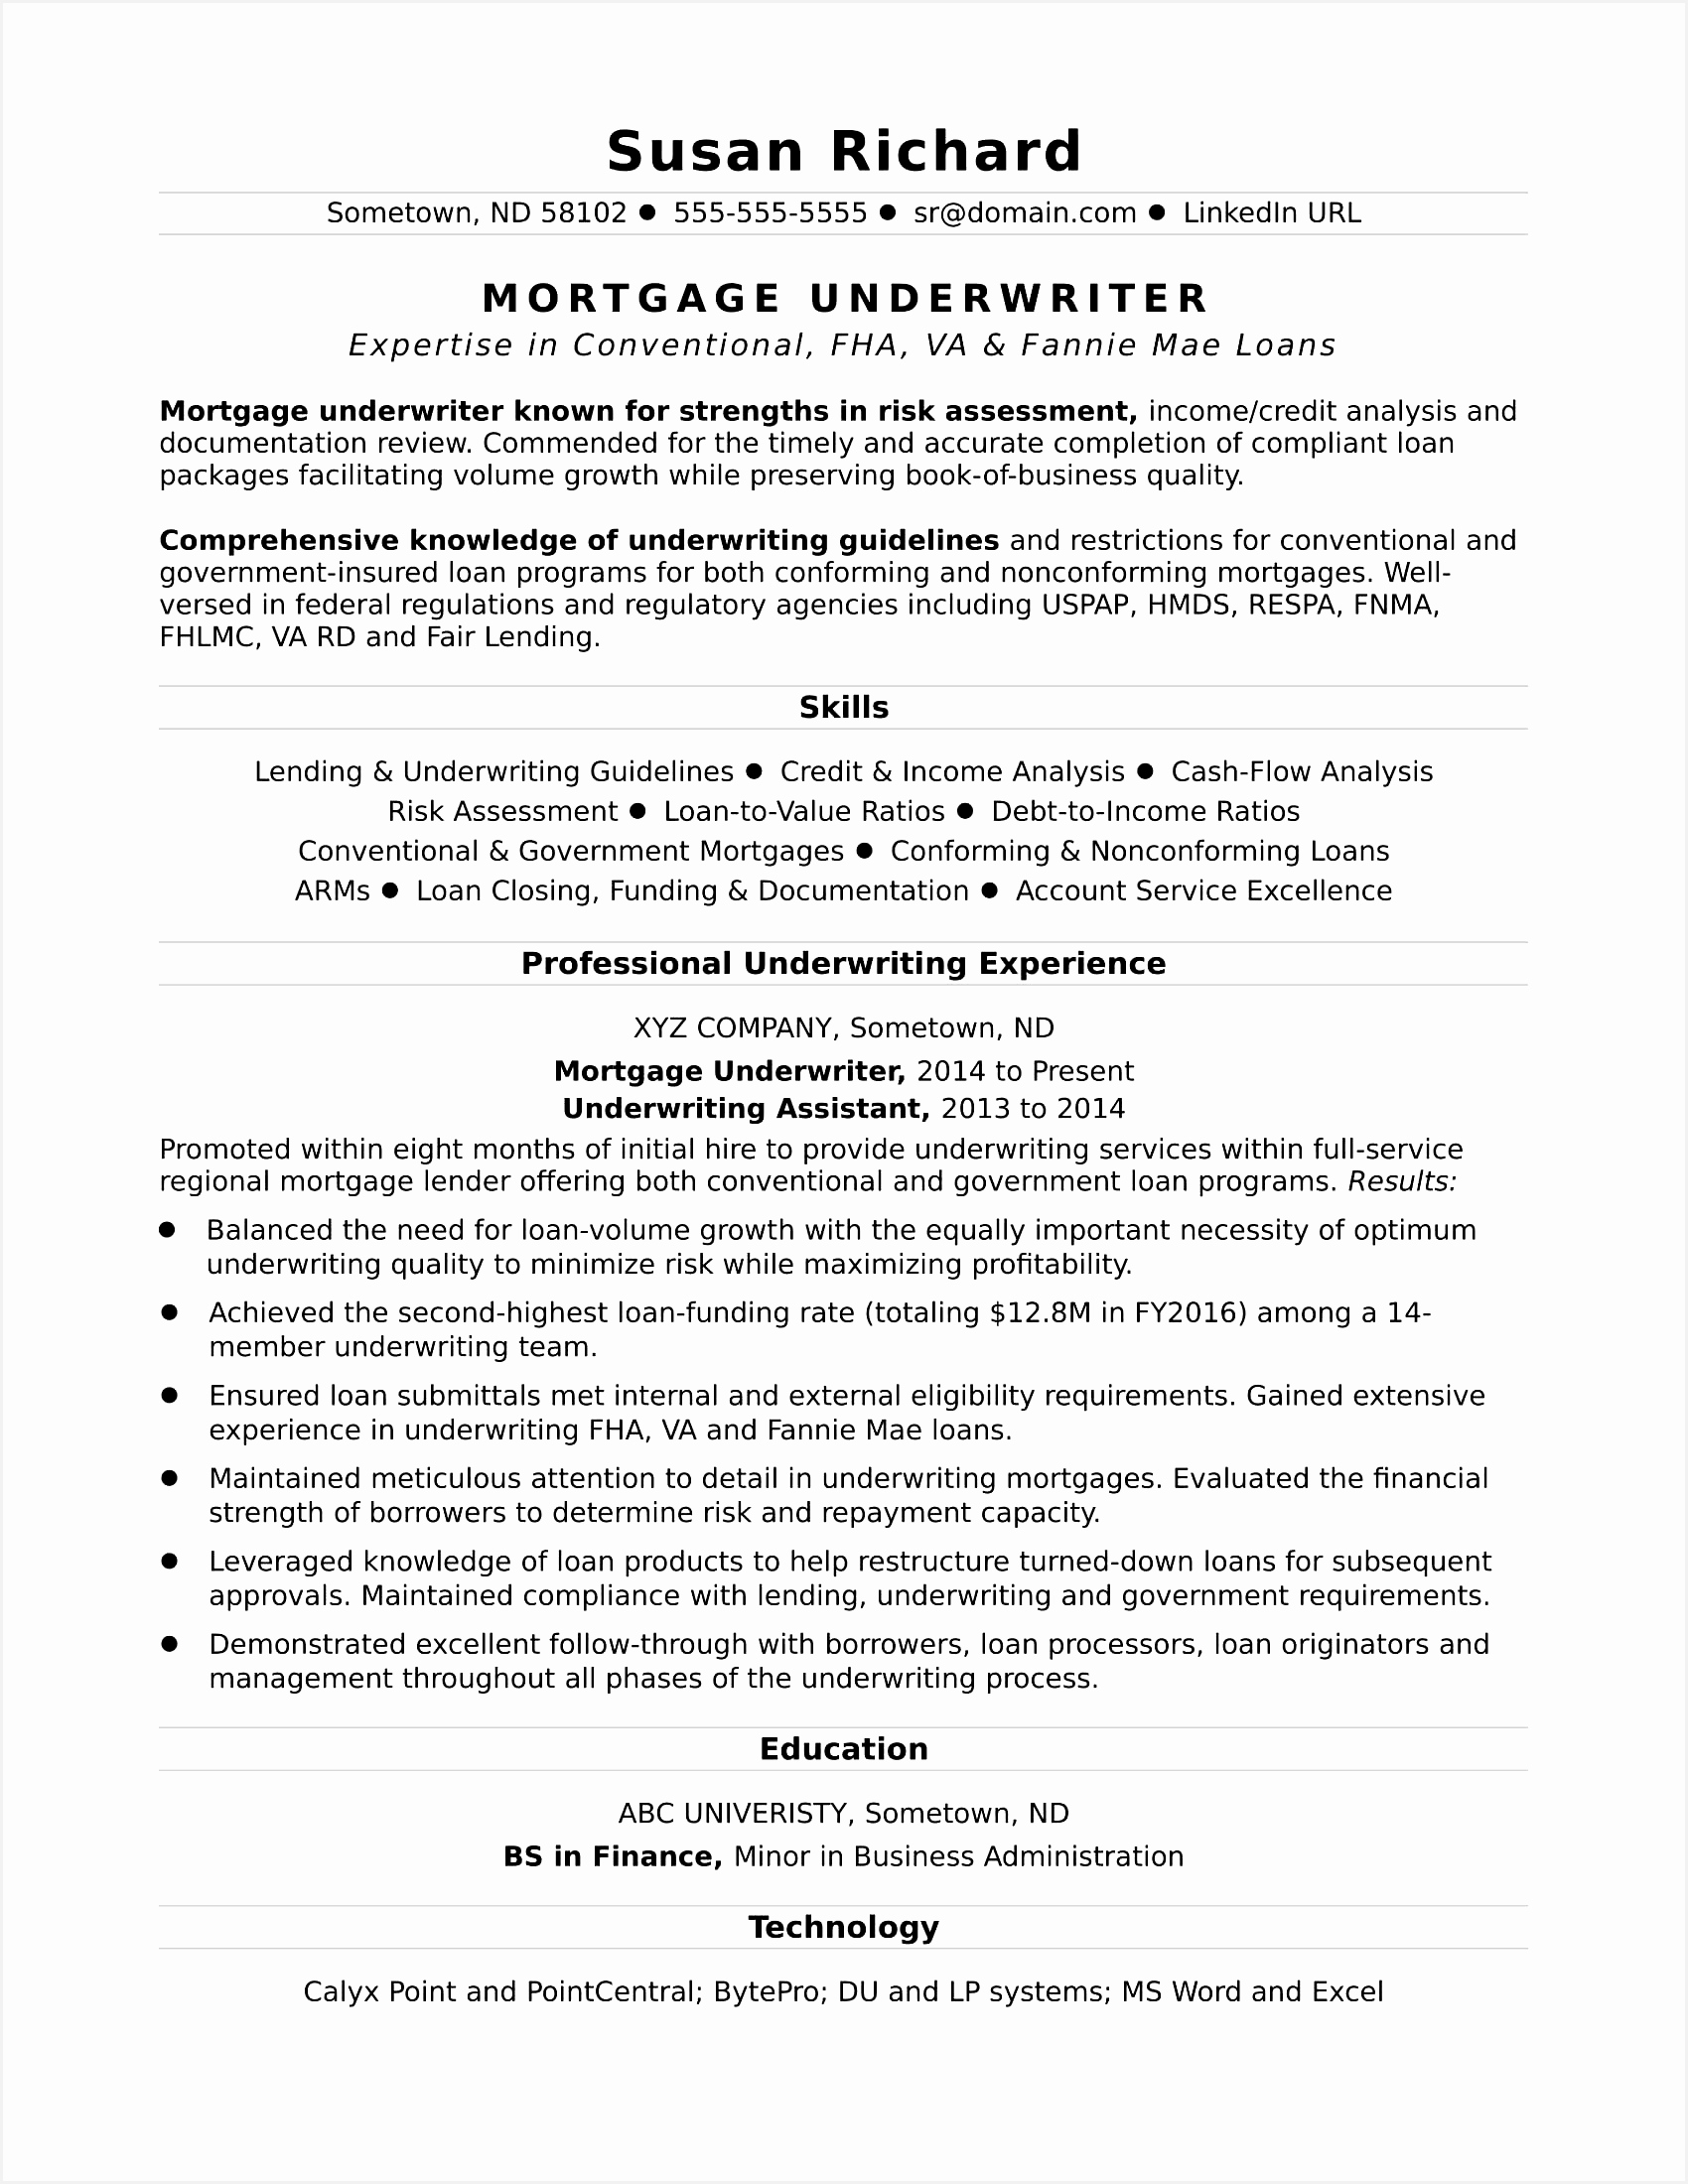 Detailed Resume Template Luxury Signs Templates 2018 Rfp Template 0d22001700